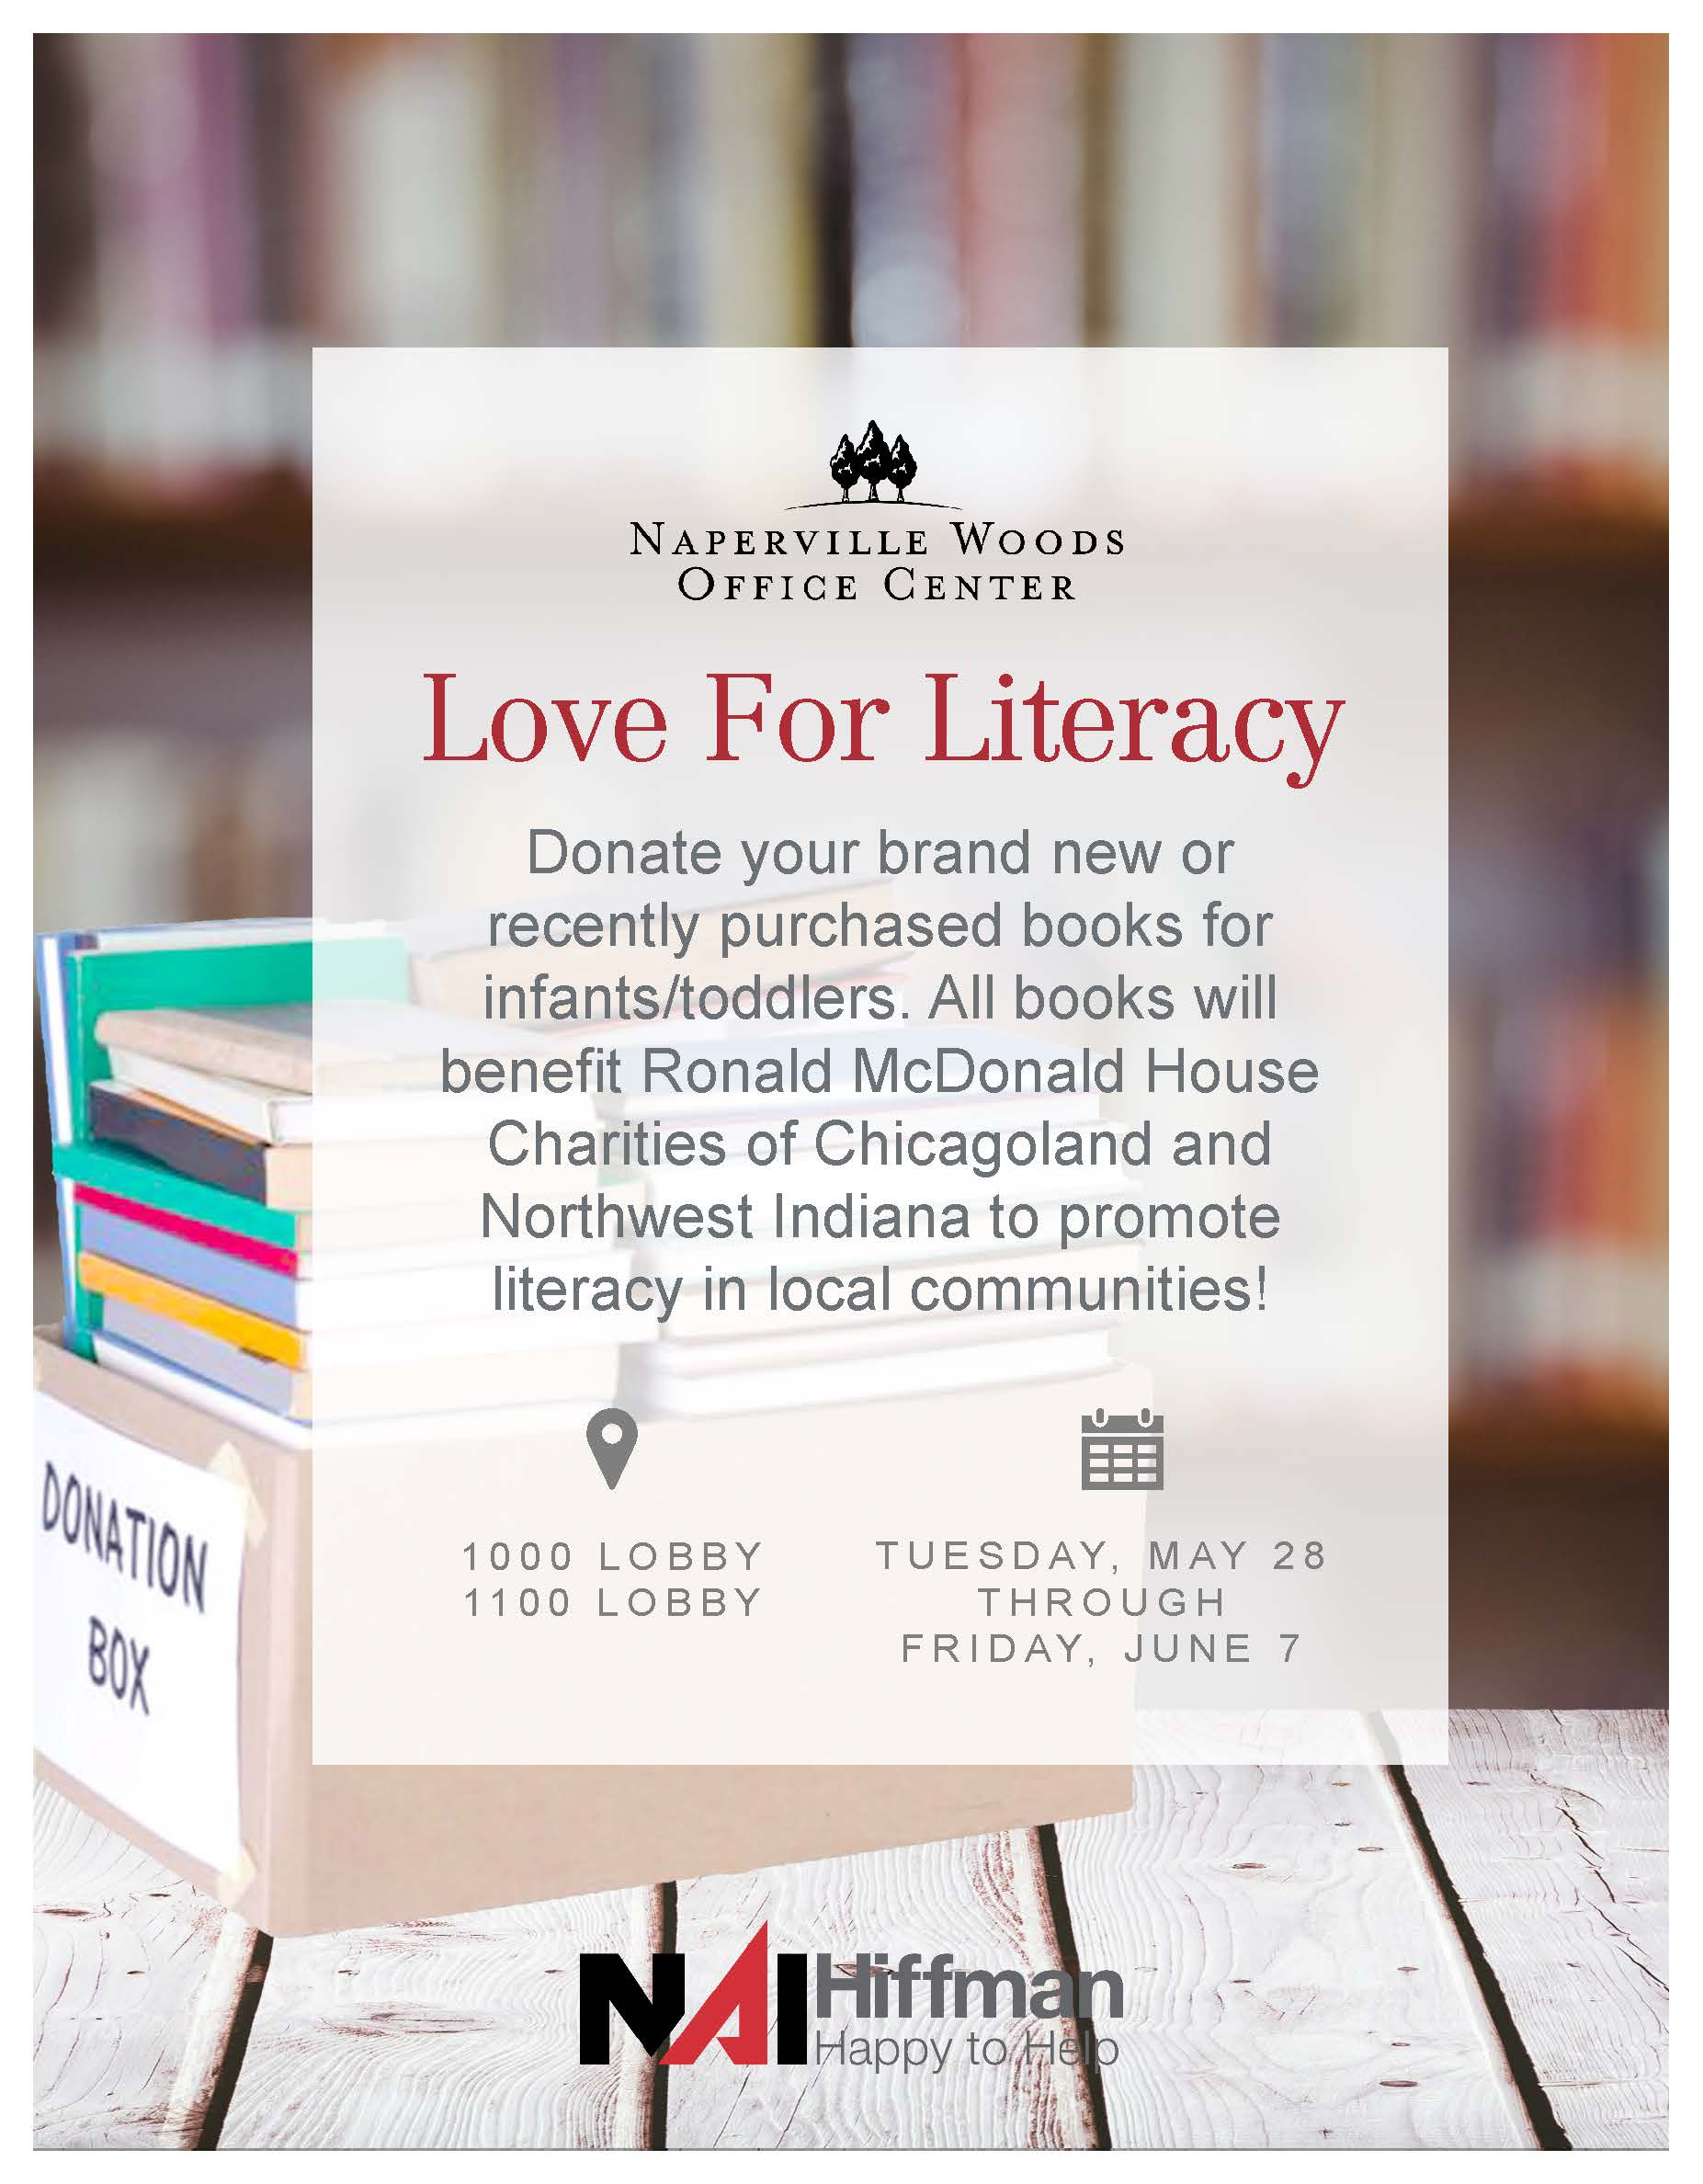 Love for Literacy 5.29.19.jpg